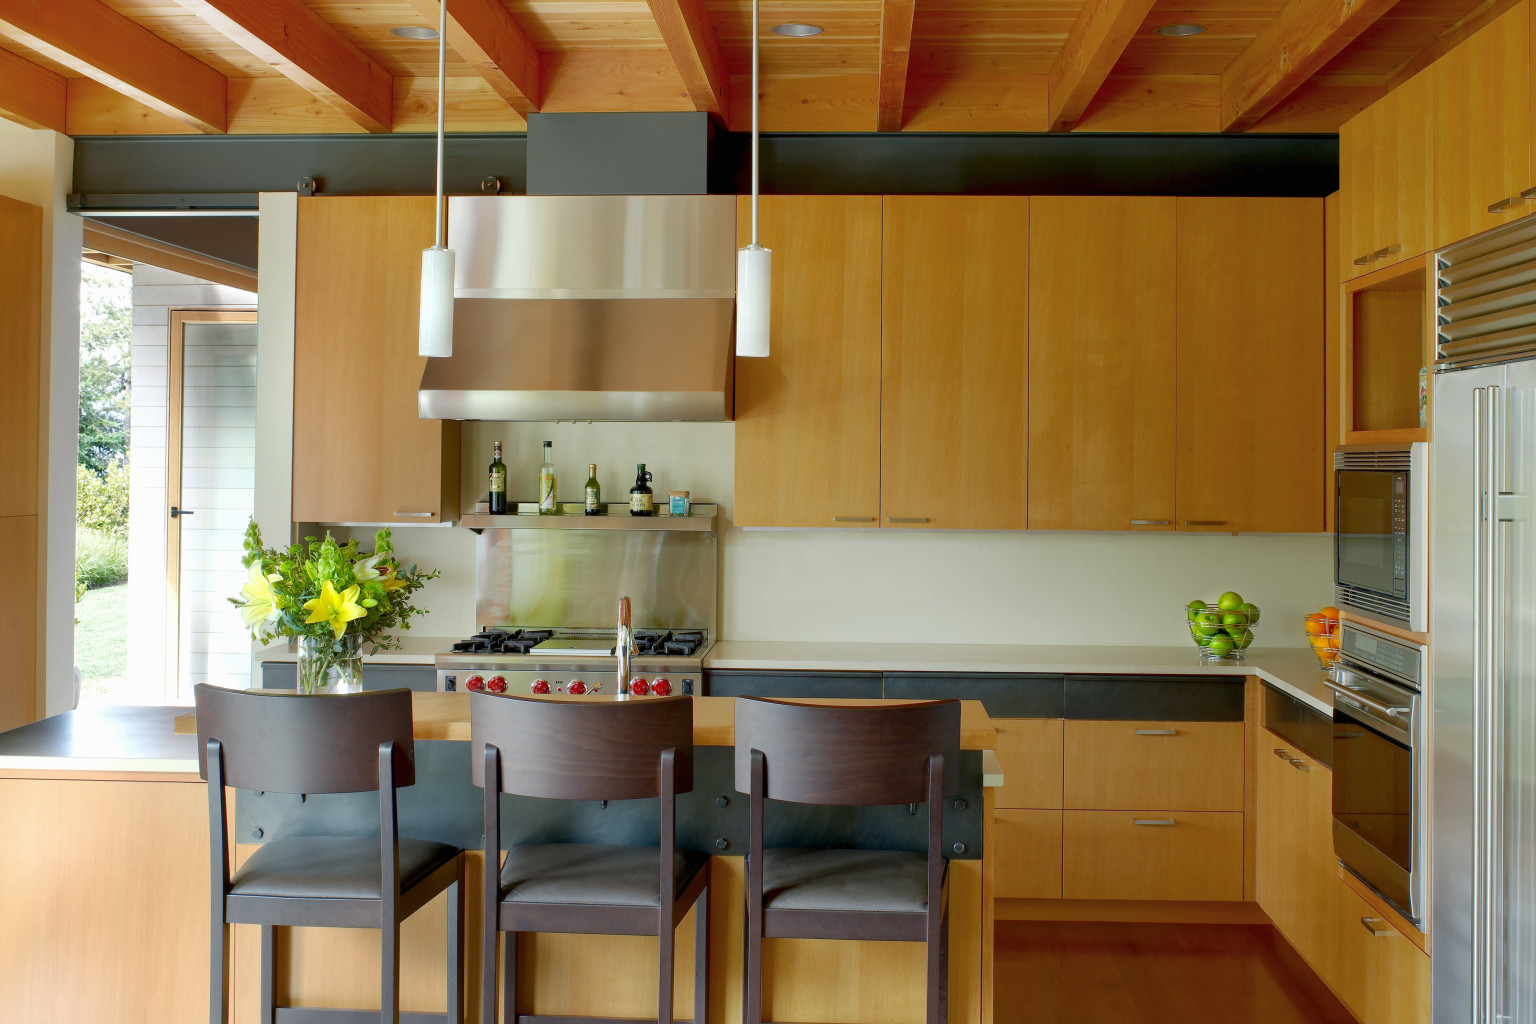 Houzz 39 s real cost finder helps you figure out how much - How much do kitchen designers cost ...